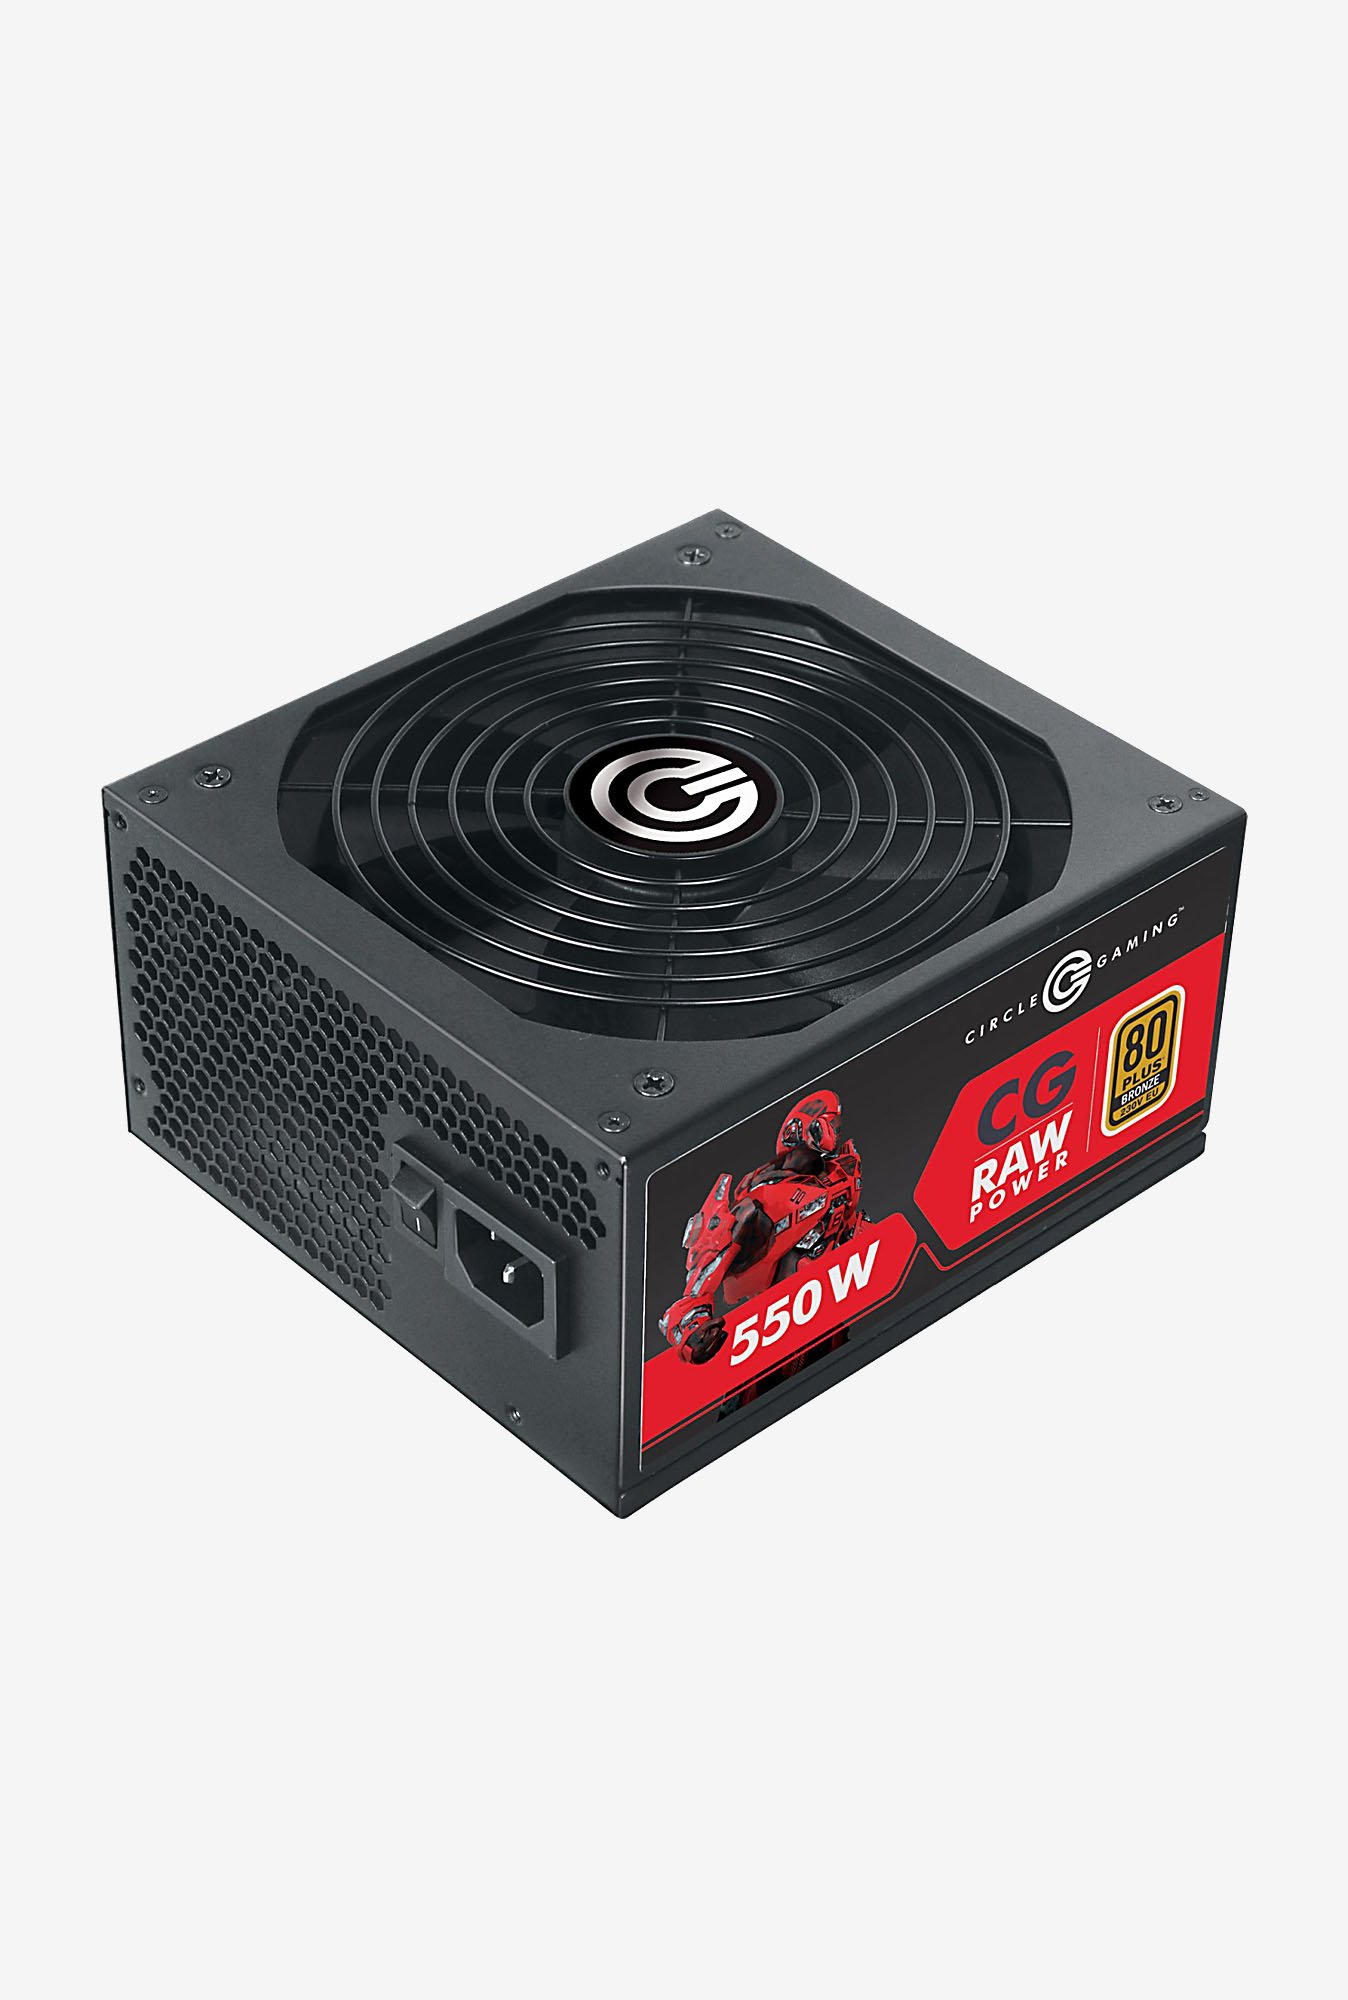 Circle CG Raw Power 550W Modular 80 Plus Bronze SMPS (Black)